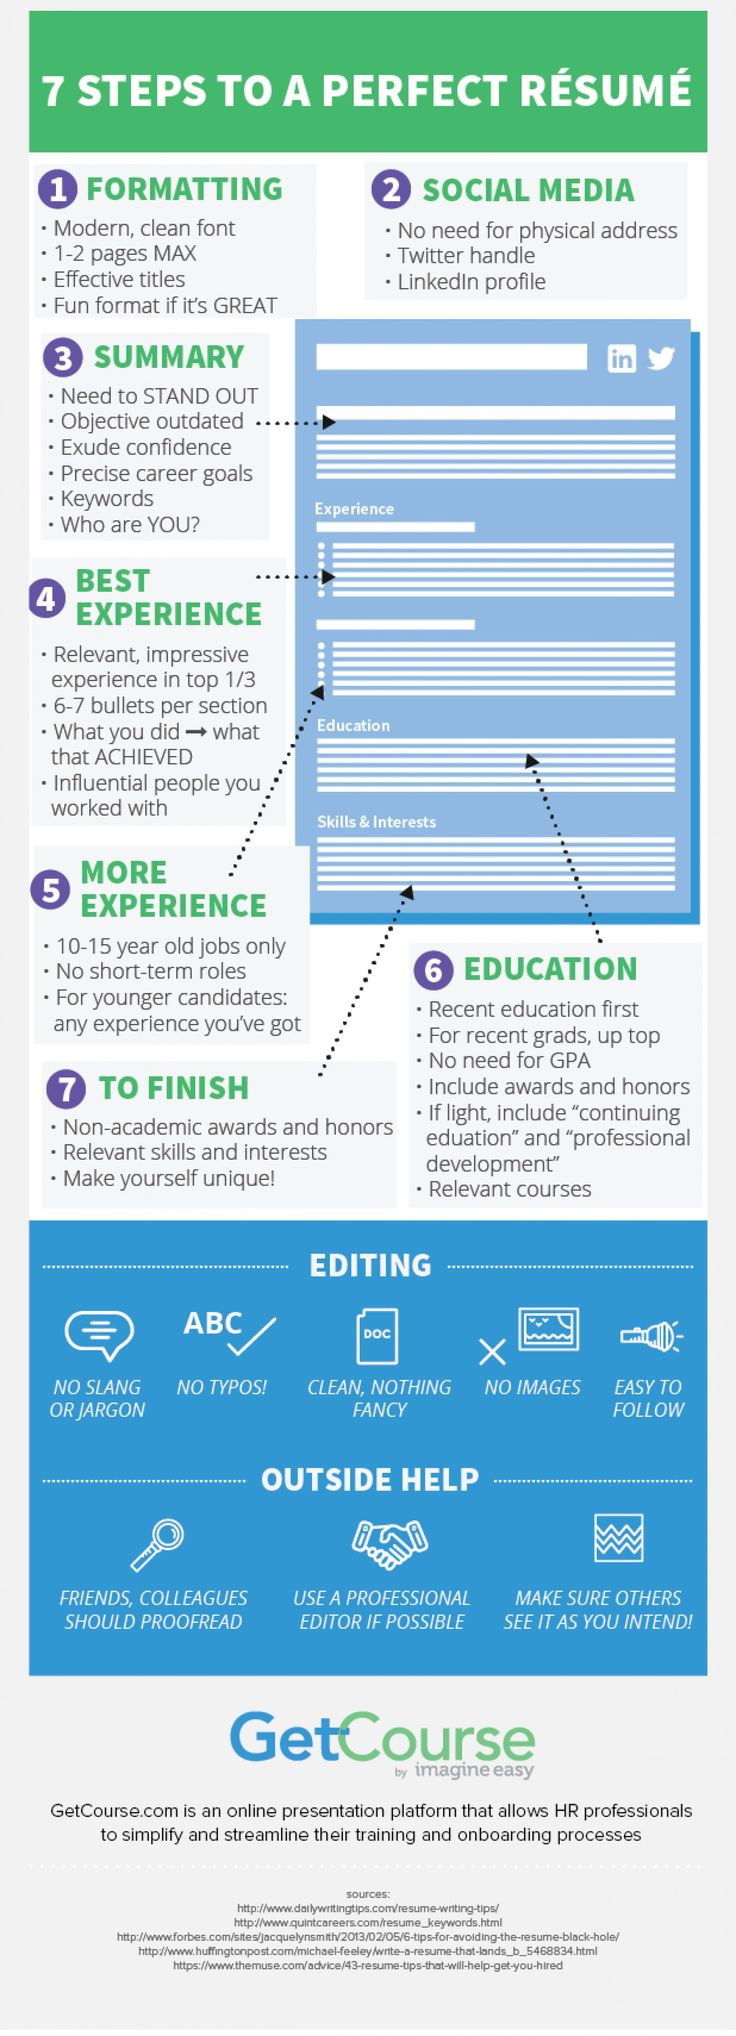 7 Steps to a Perfect #Resume